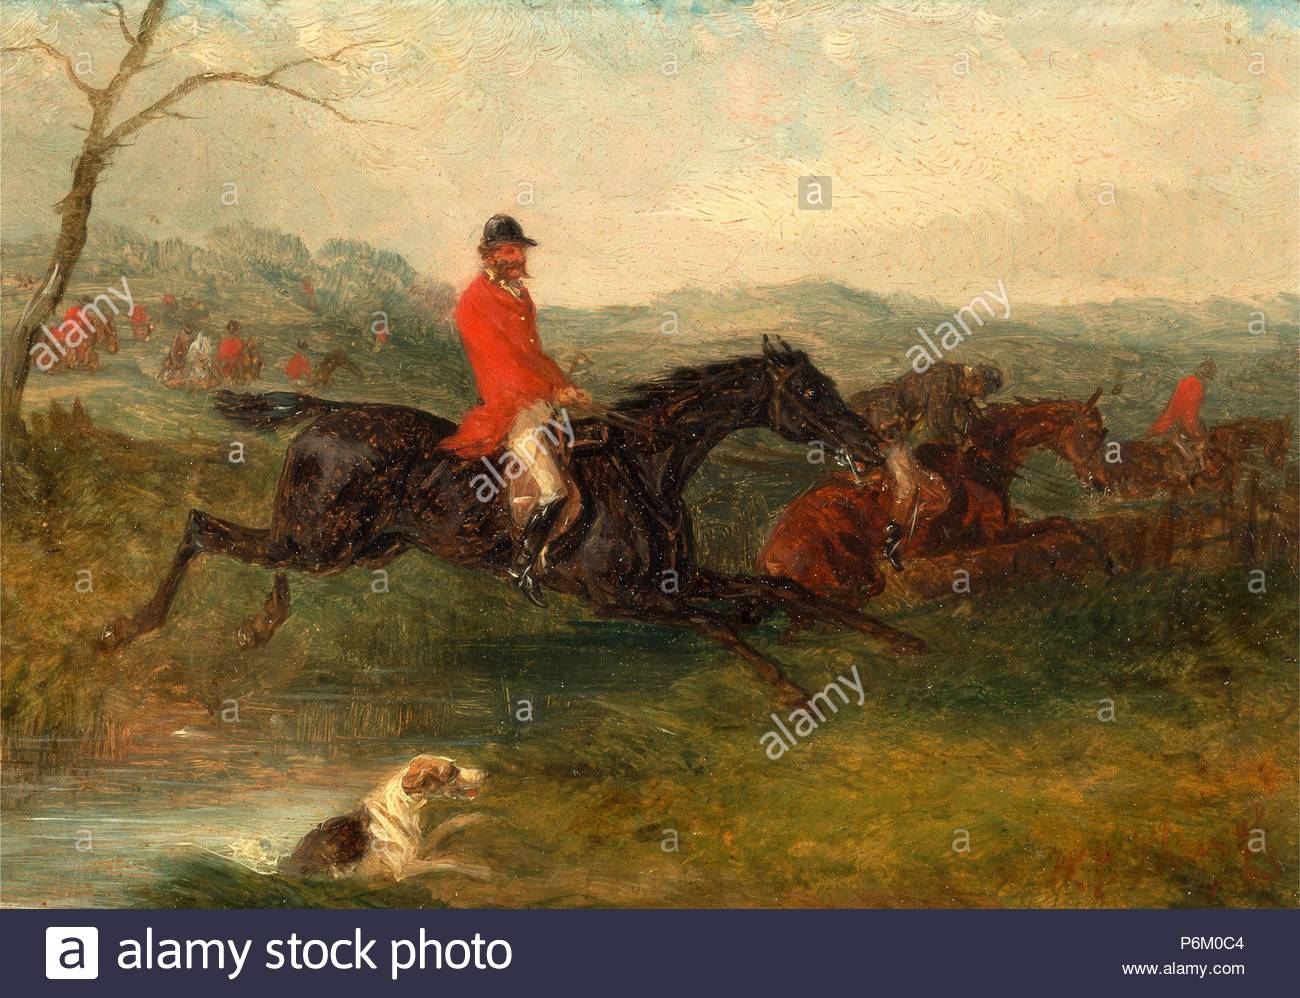 Foxhunting: Clearing a Brook Signed and dated in red paint, lower right: 'WJ Shayer | 63', William J. Shayer, 1811-c.1885, British. - Stock Image